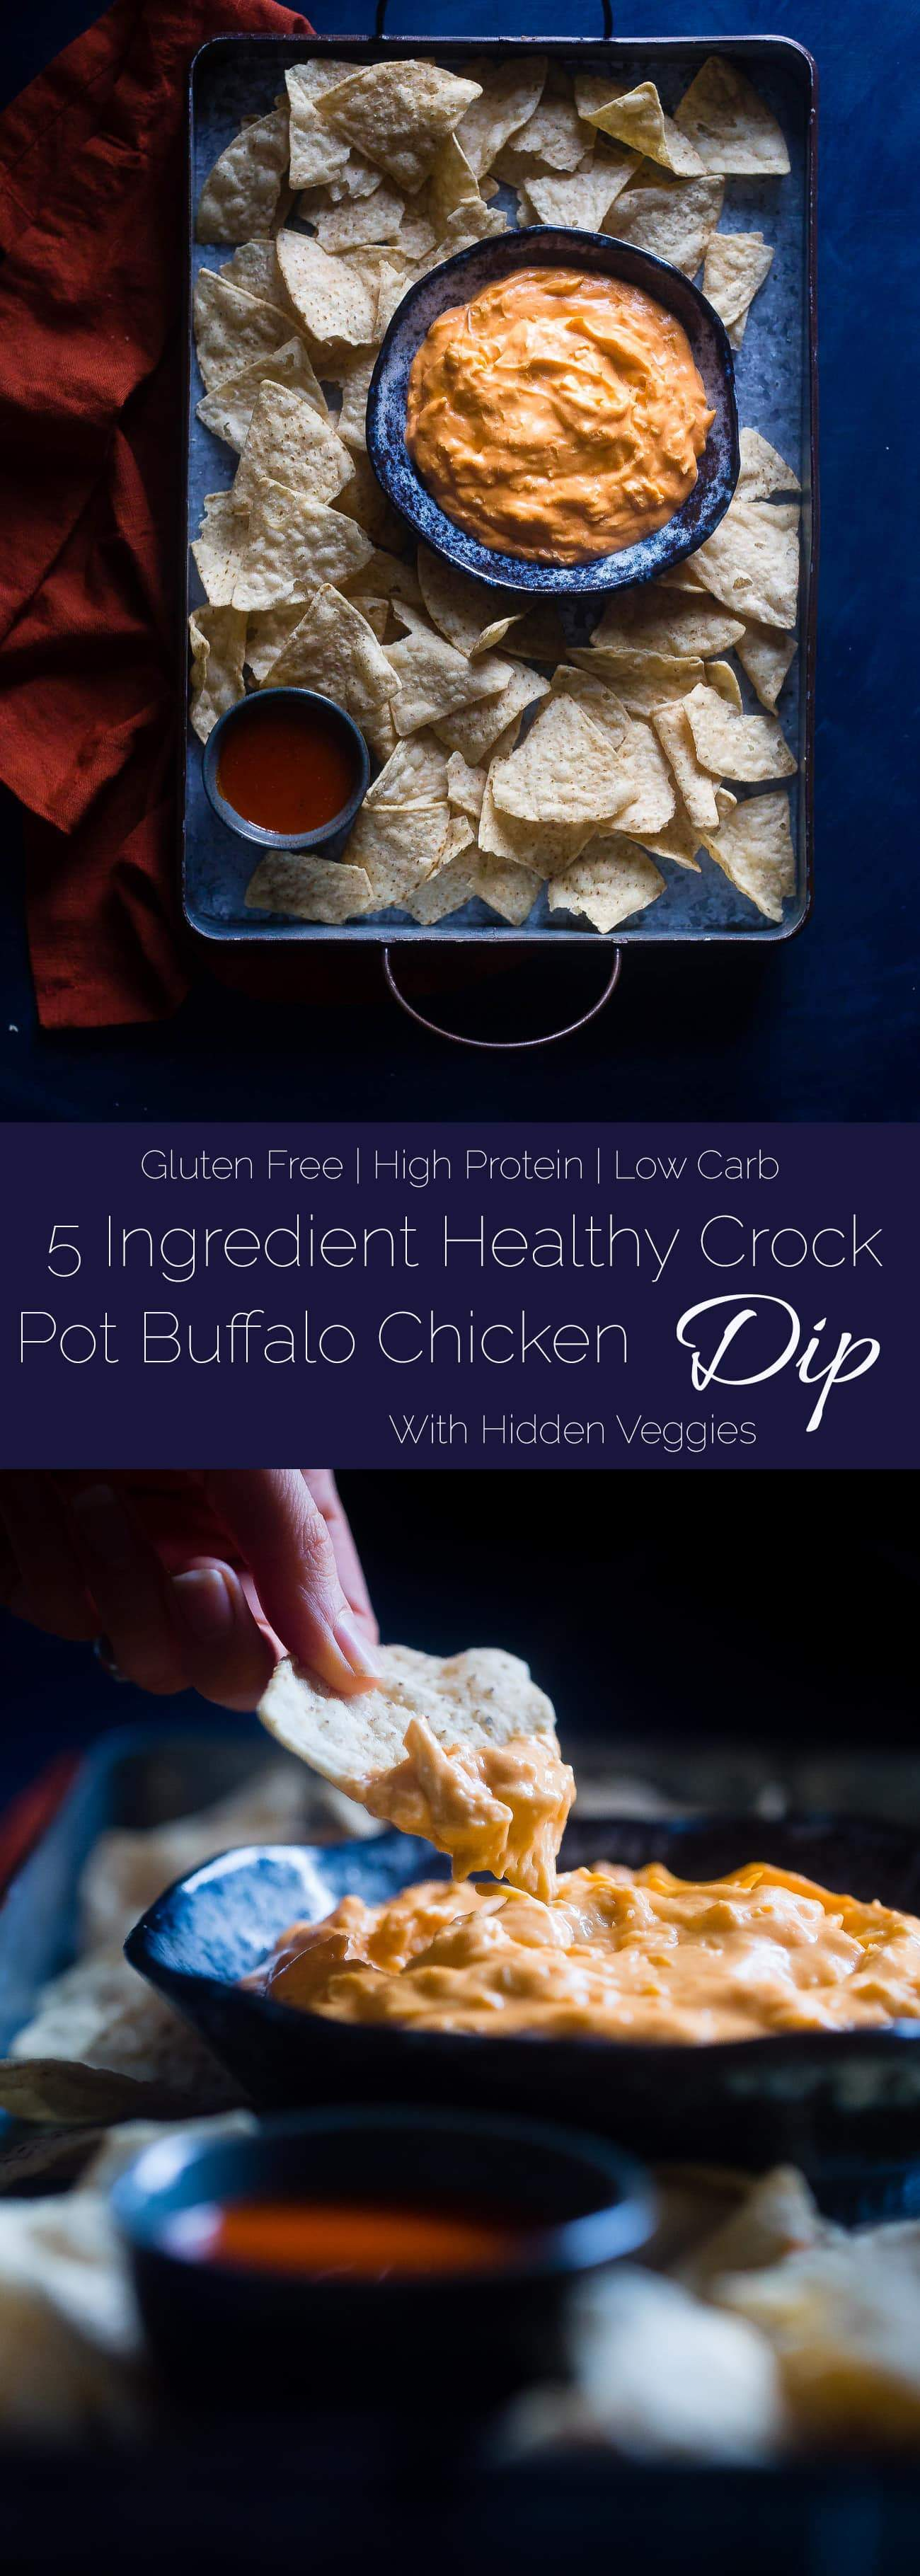 5 Ingredient Crock Pot Buffalo Chicken Dip with Cauliflower - This dip is made with cauliflower so it's packed with hidden veggies and extra creamy! It's a healthy, low carb and gluten free appetizer for game day! | Foodfaithfitness.com | @FoodFaithFit